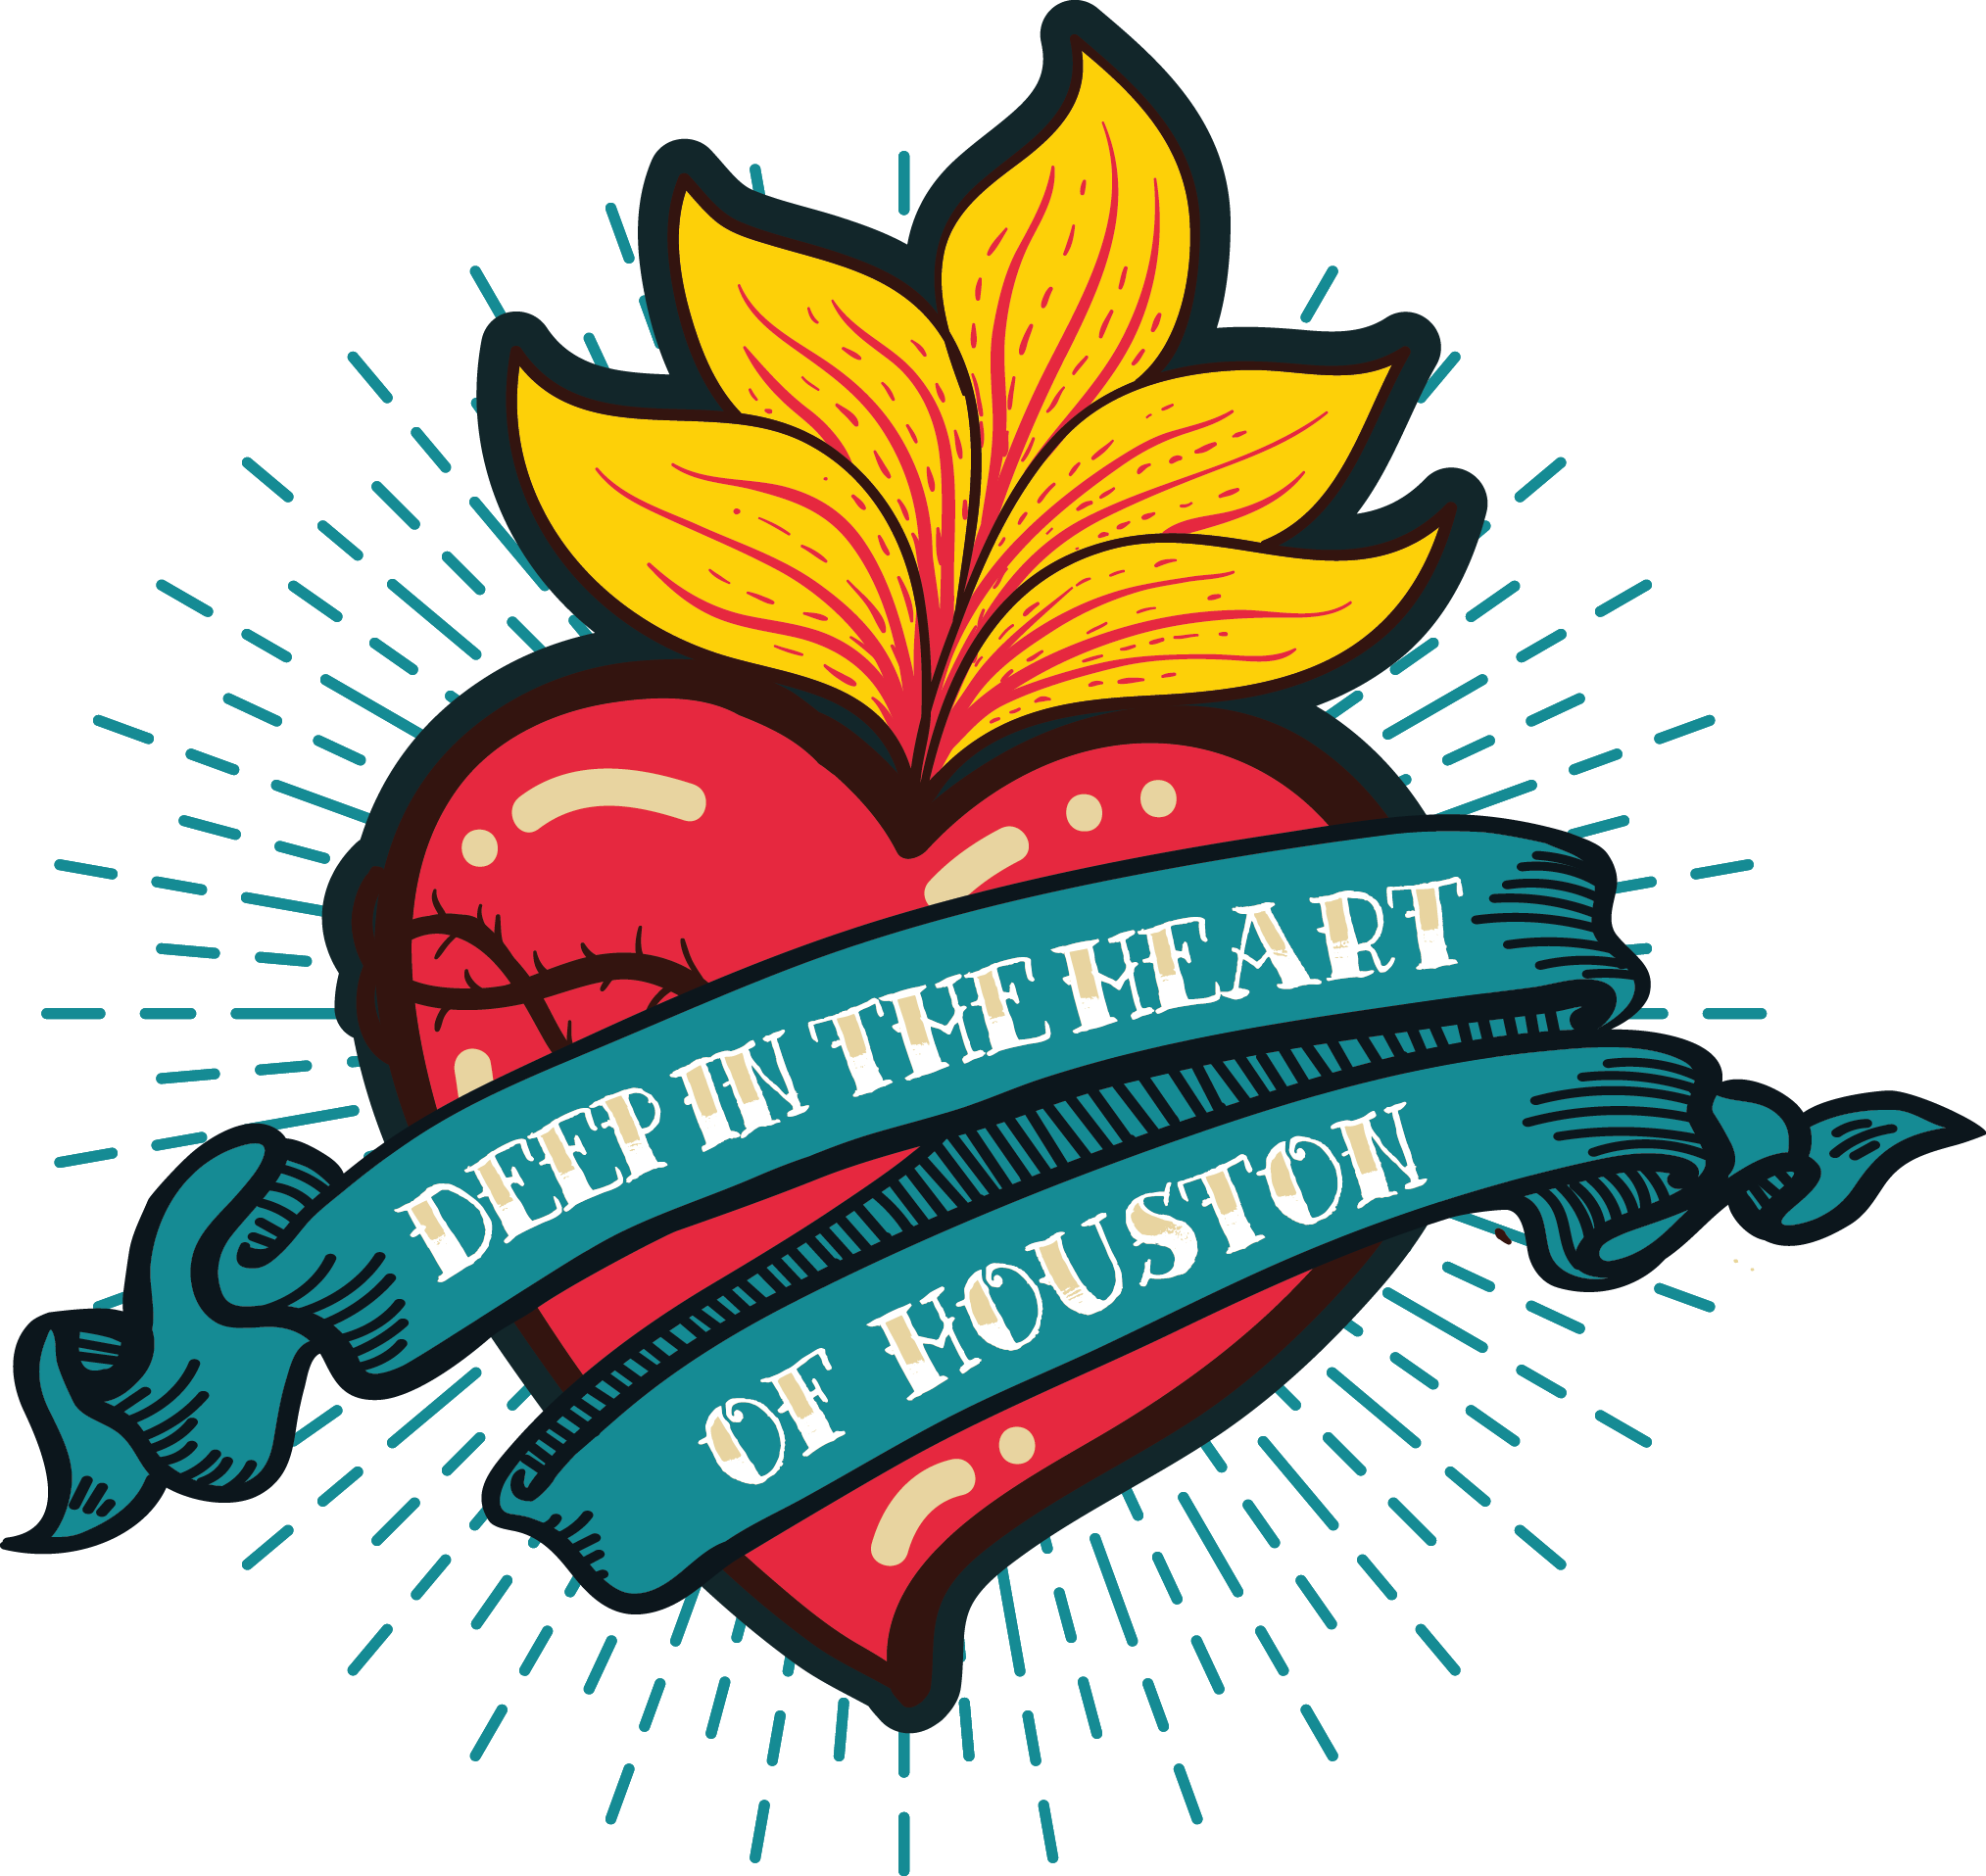 Deep in the heart of texas clipart vector transparent download Deep in the Heart of Houston, benefiting Wesley Community Center ... vector transparent download